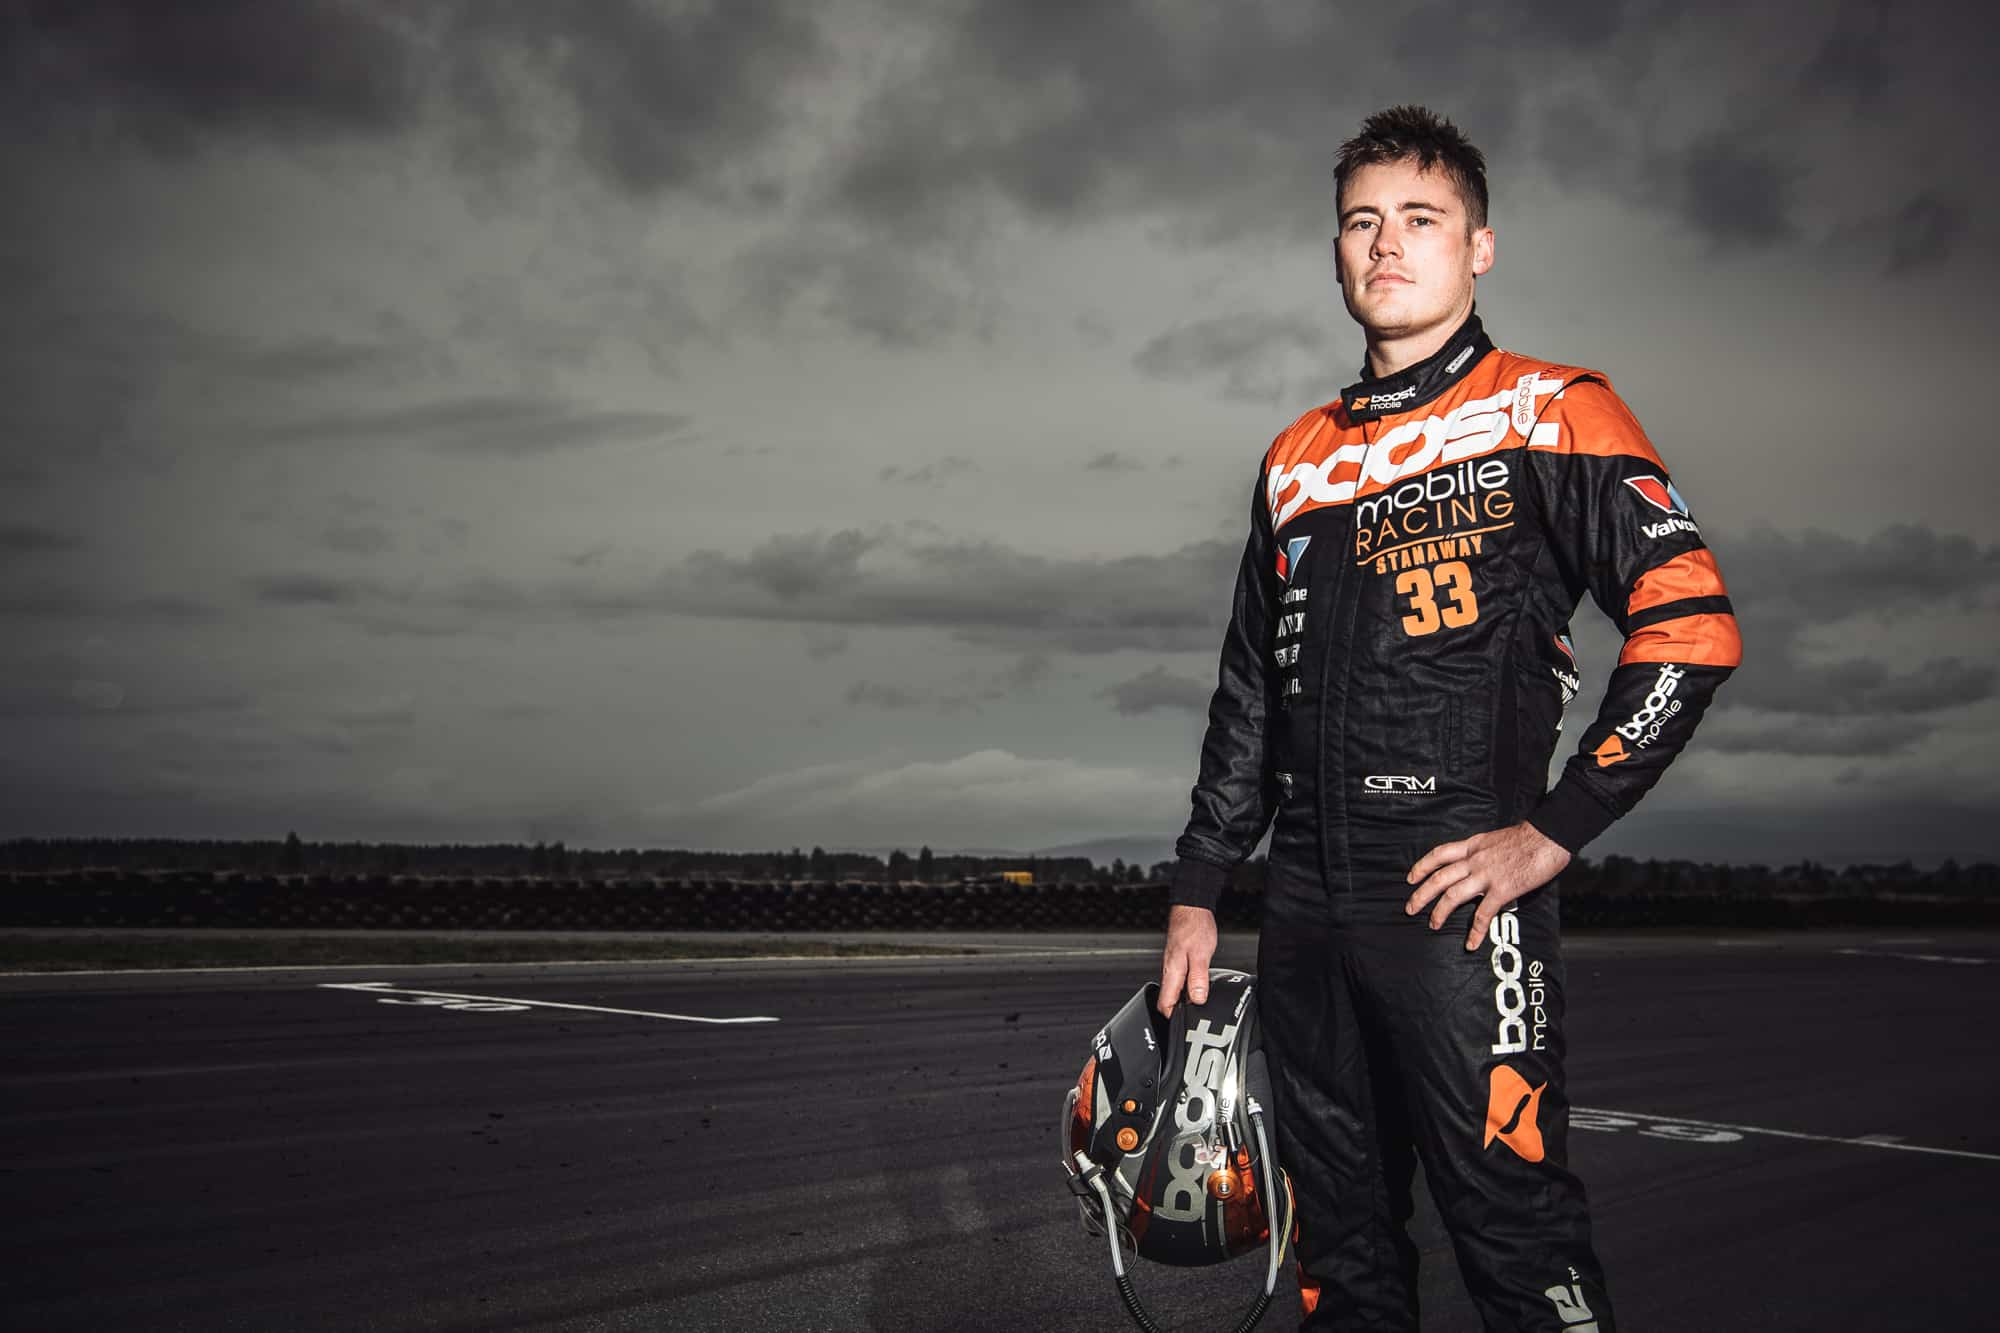 Stanaway to miss Darwin due to ongoing neck issues